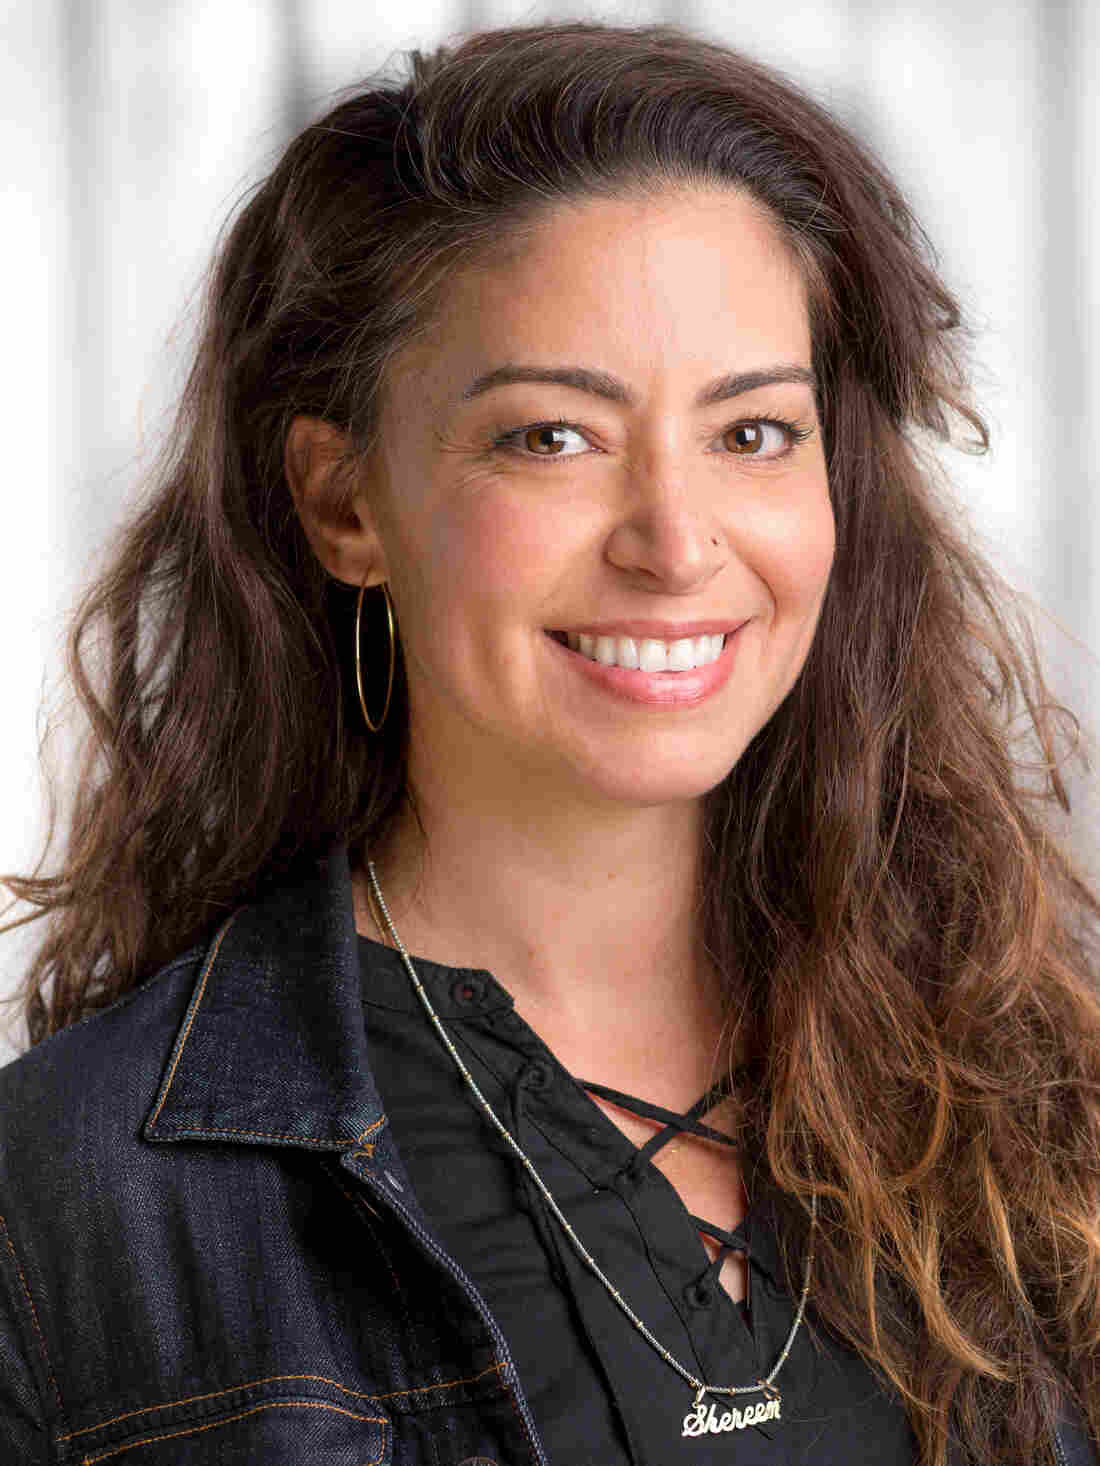 Shereen Meraji at NPR West in Culver City, California, 2018